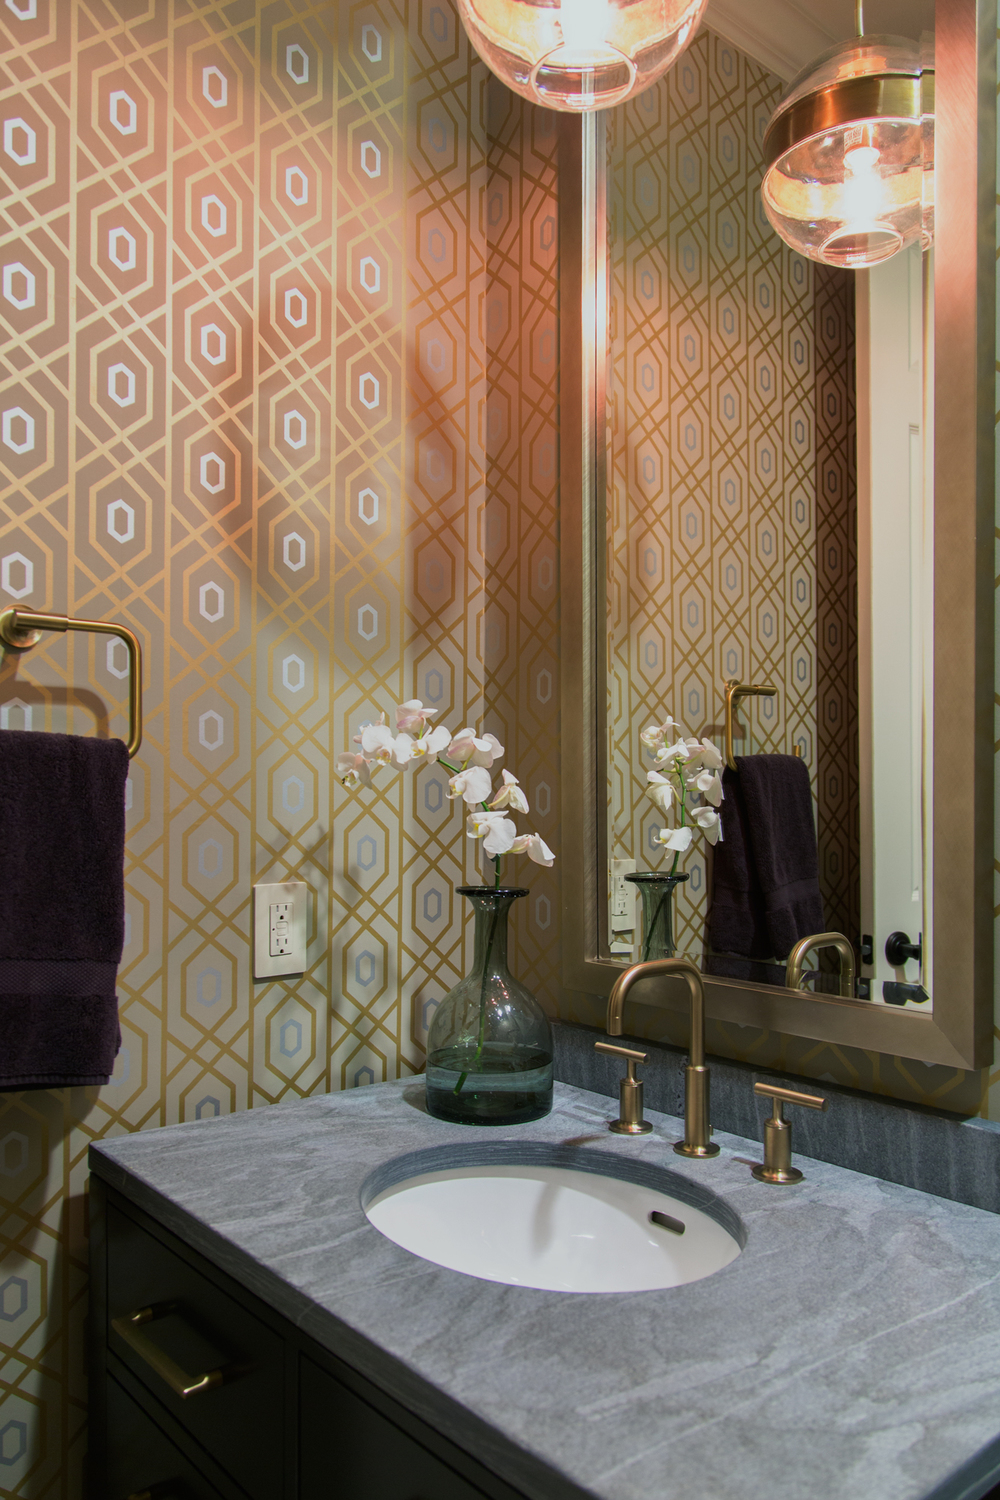 Powder room remodel; limestone countertop; gilded mirror; bathroom fixtures; glass pendant lighting | Interior Designer: Carla Aston / Photographer: Tori Aston